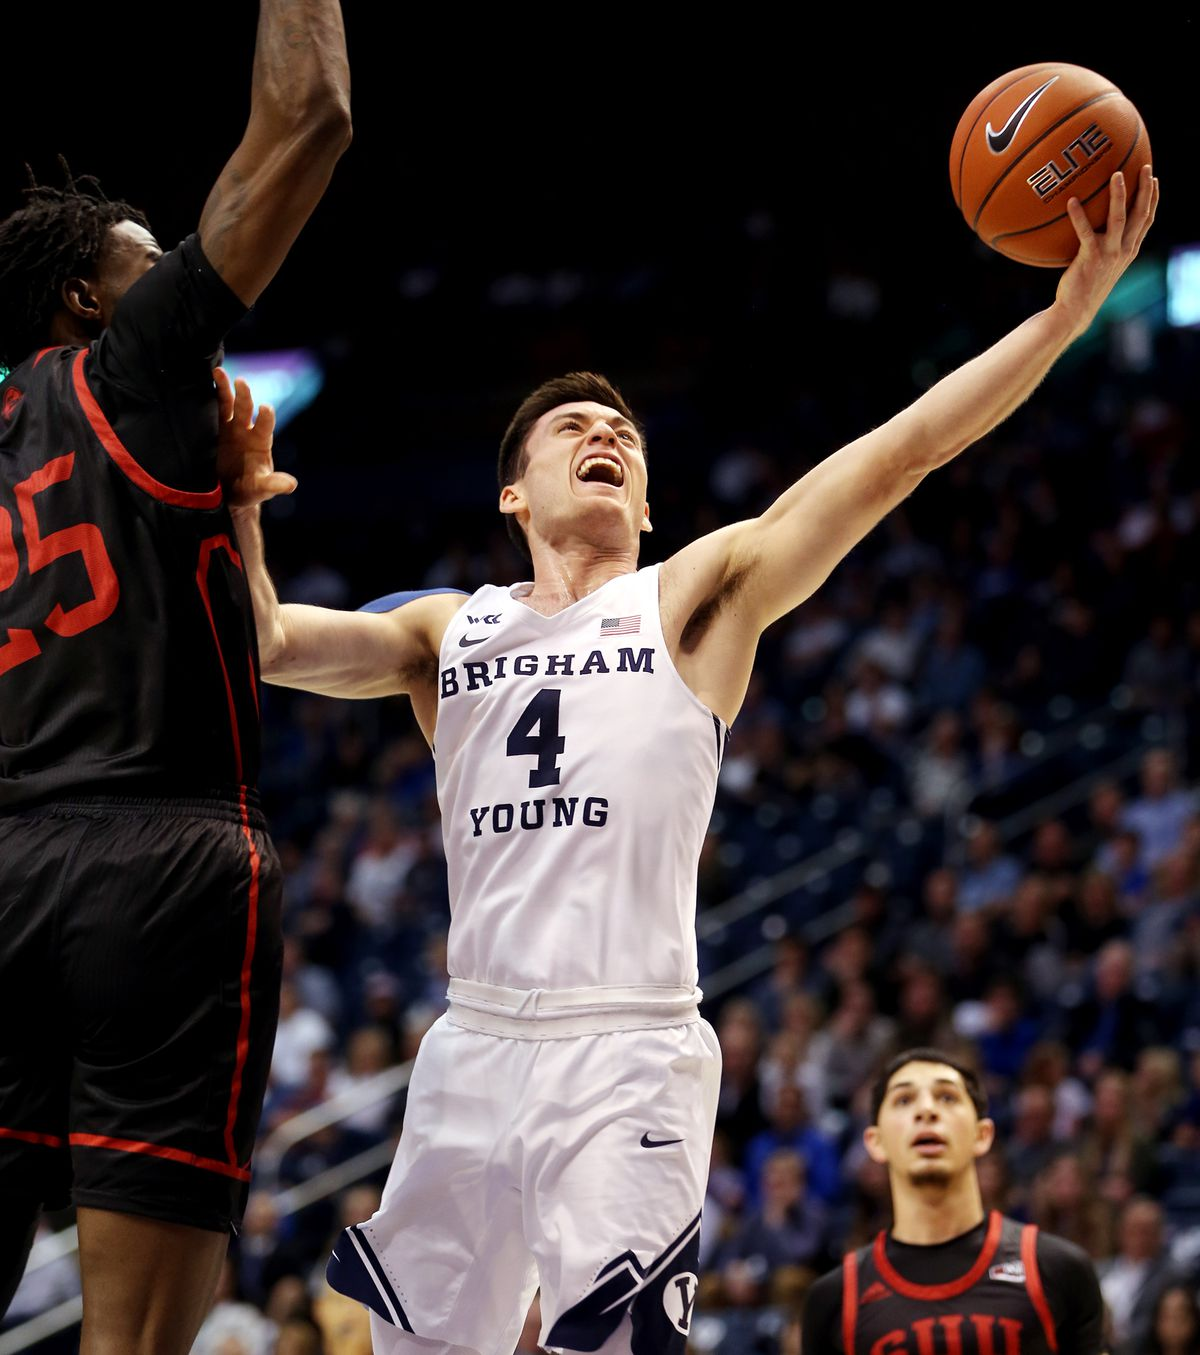 Brigham Young Cougars guard Alex Barcello (4) puts up a shot with Southern Utah Thunderbirds forward Dwayne Morgan (25) defending on the play as BYU and Southern Utah University play in a NCAA basketball game in Provo at the Marriott Center on Wednesday, Nov. 13, 2019.